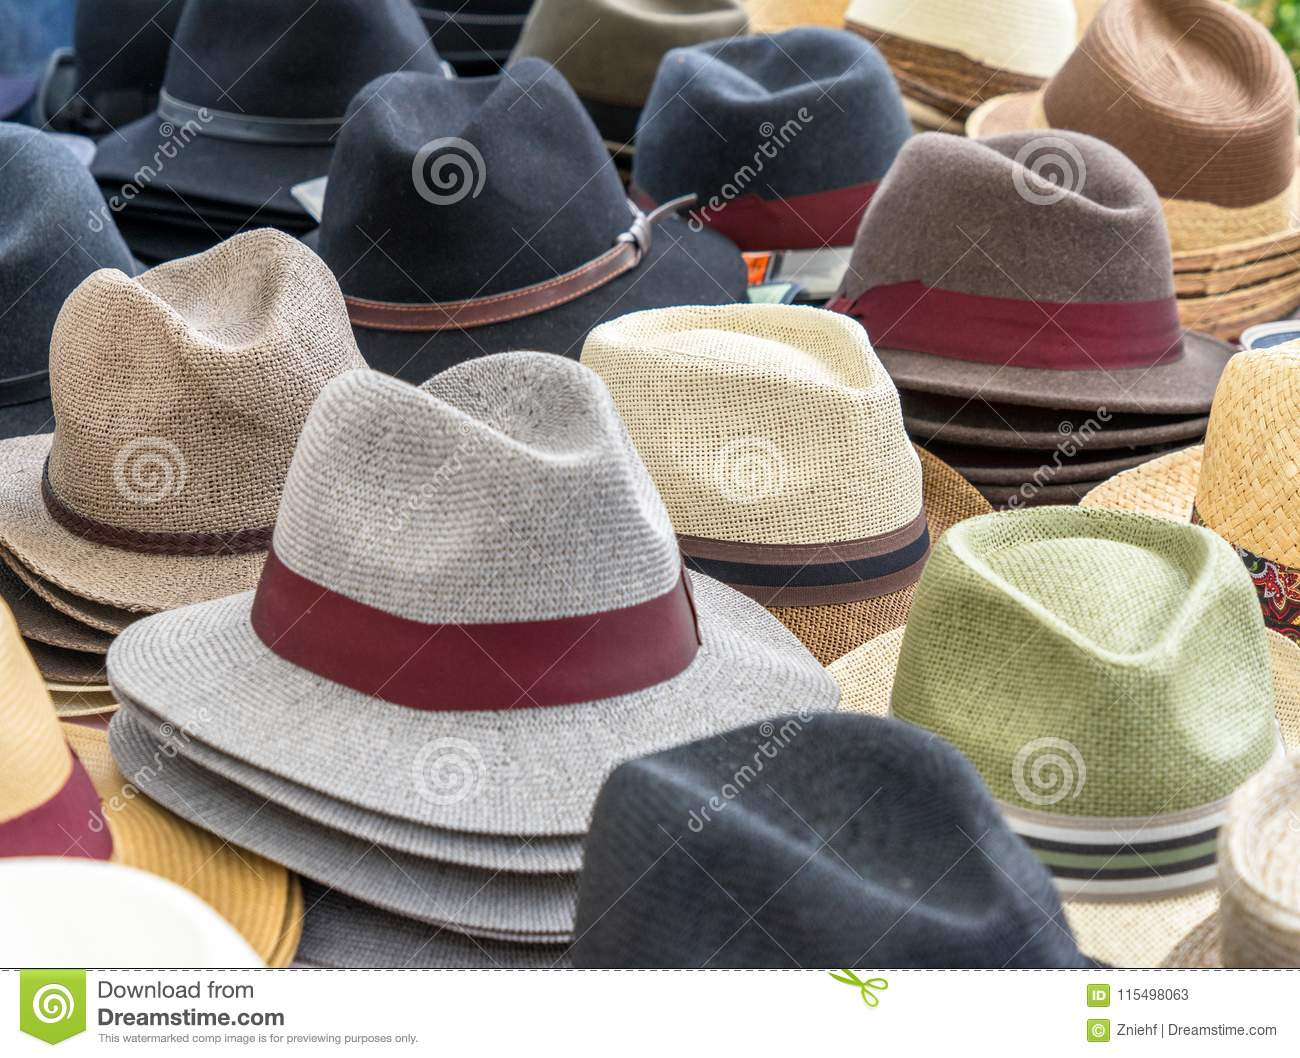 42594e00199cc Many hats for men in different shapes and colors in one display for sale